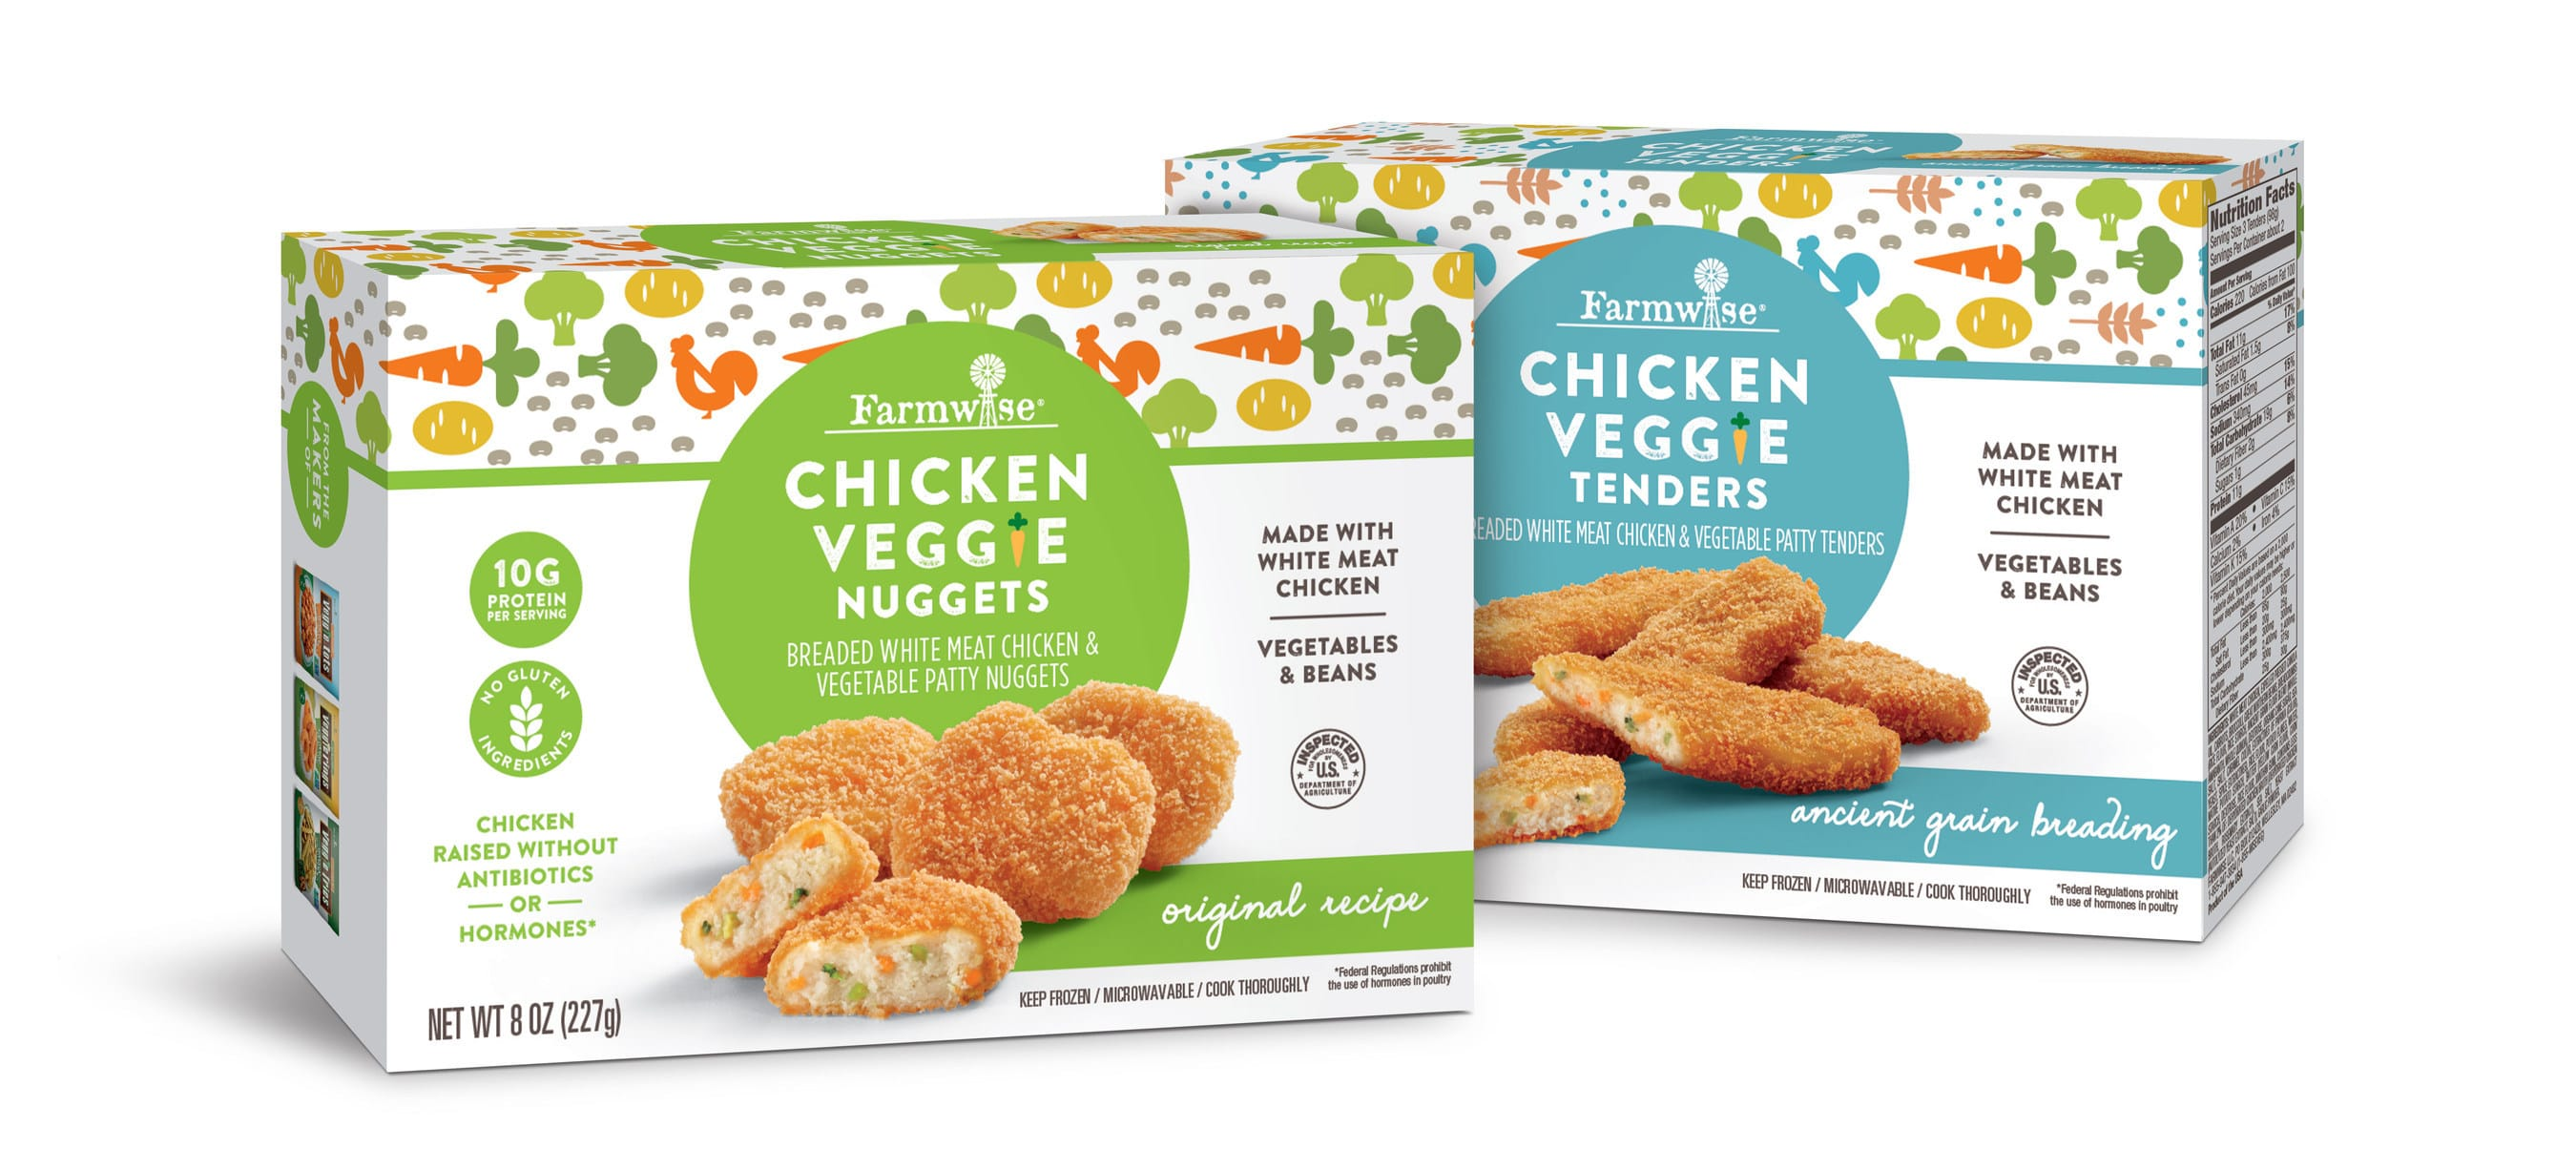 Farmwise Launches Chicken Veggie Nuggets and Tenders